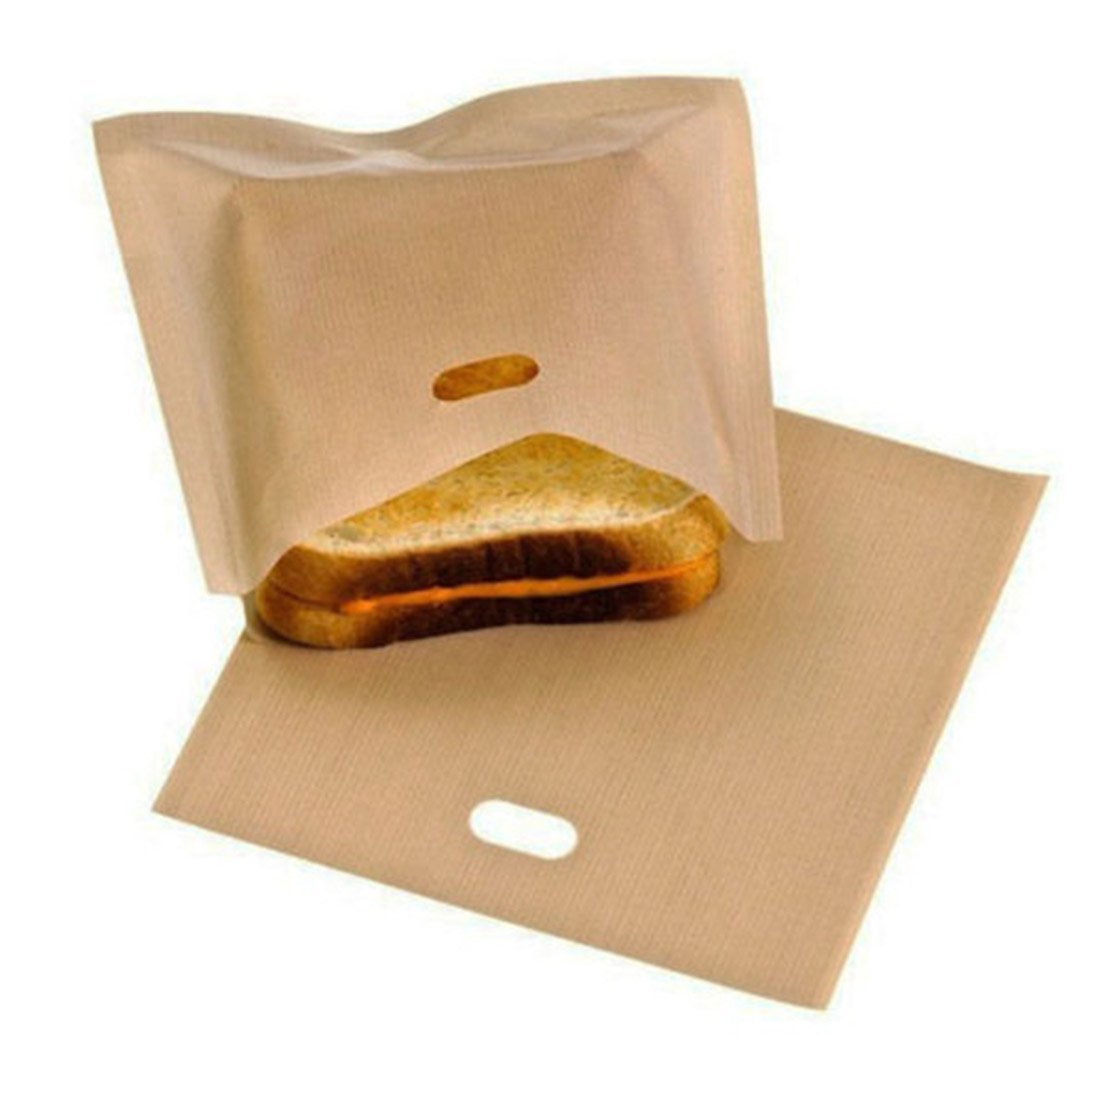 Reusable Toaster Bags: Non-Stick Sandwich Pouch 20 Pack - FDA Approved, BPA & Gluten Free Sleeve - Great for Grilled Cheese, Chicken Nuggets, Pizza ...